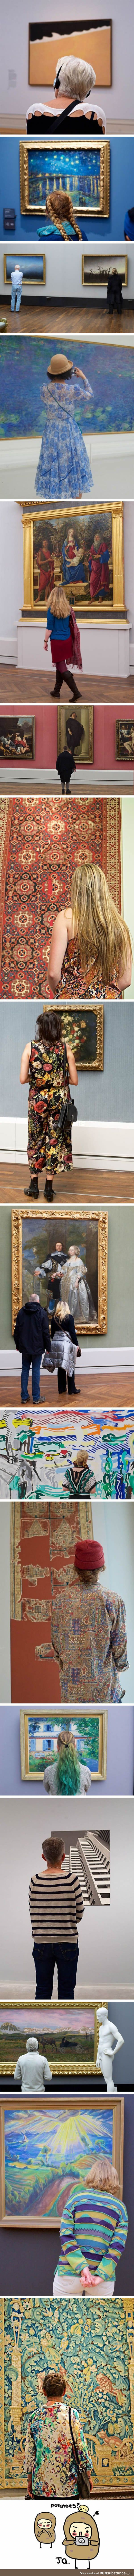 Photographer spent months waiting for museum visitors to match the artworks they observe